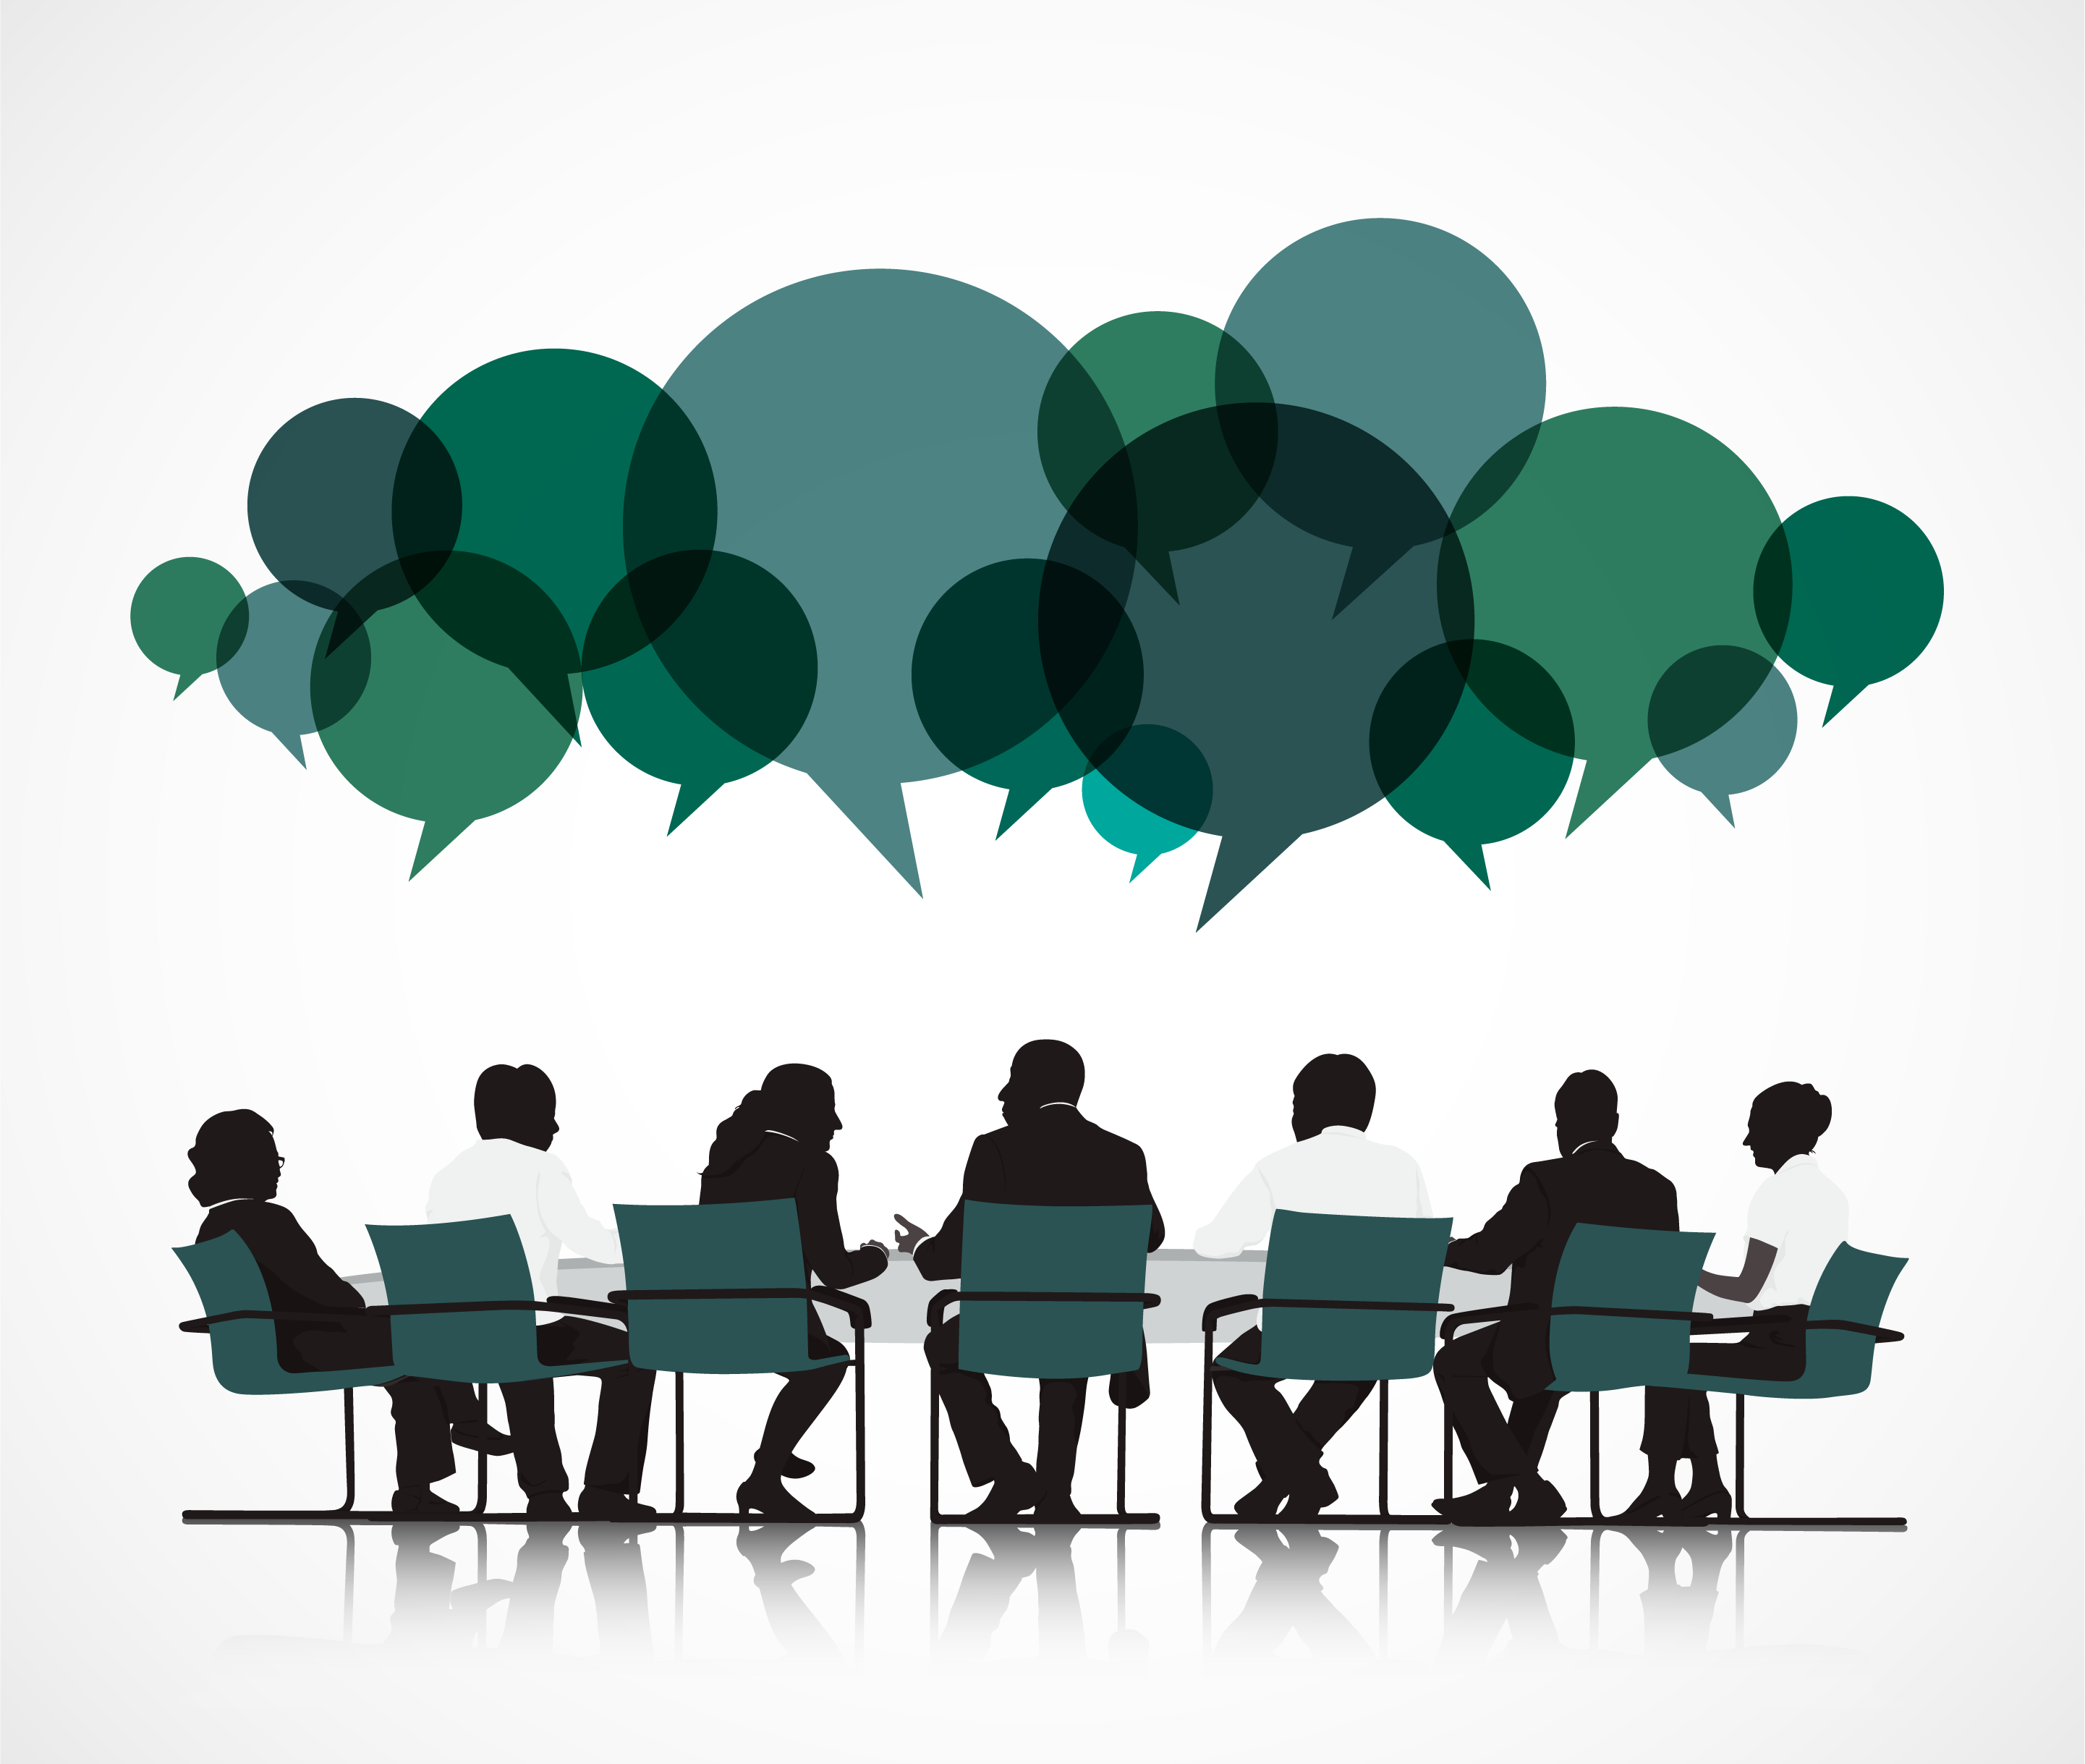 Meeting Icon Png image #3242